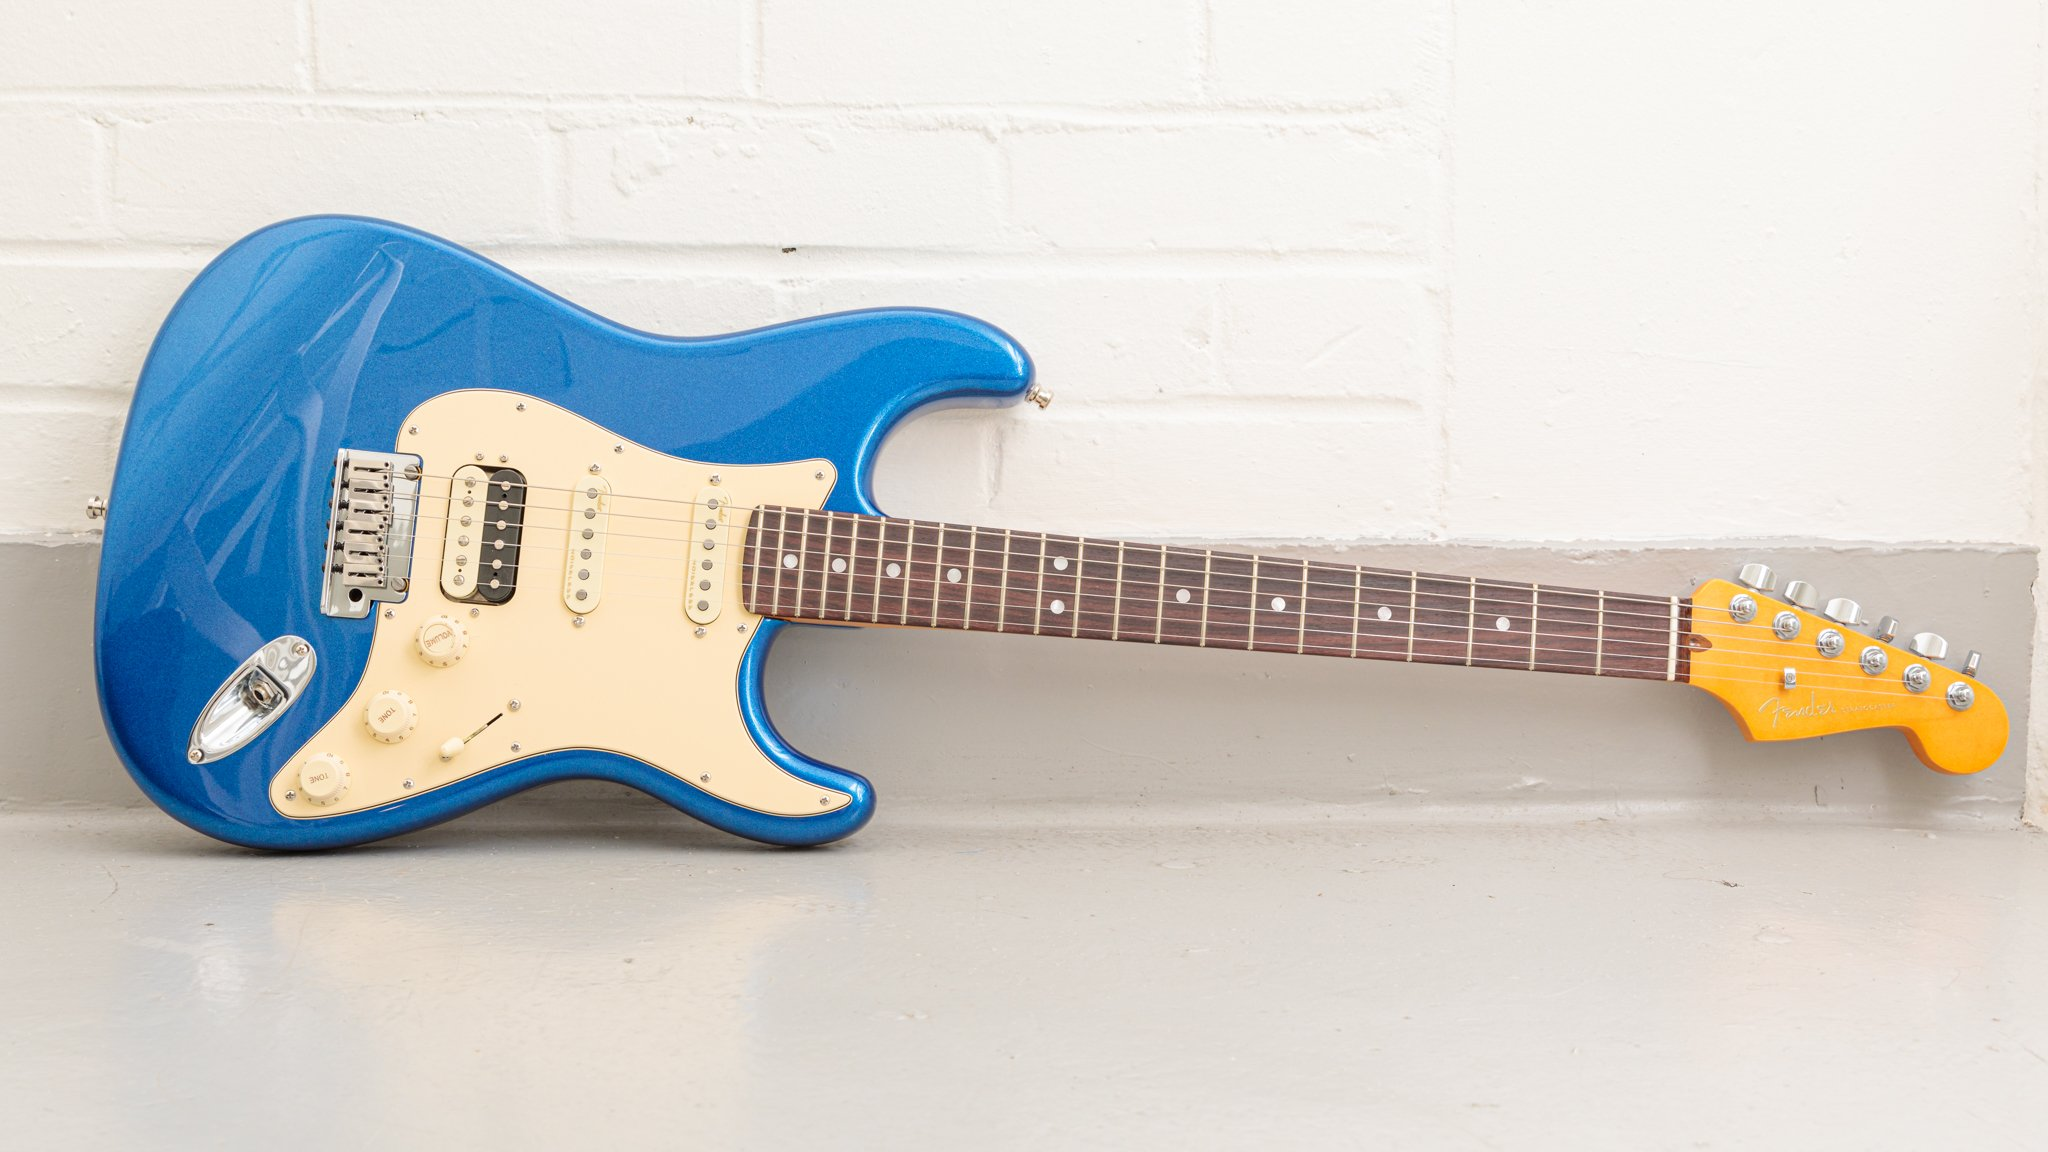 Fender American Ultra Stratocaster Review  An Exquisite